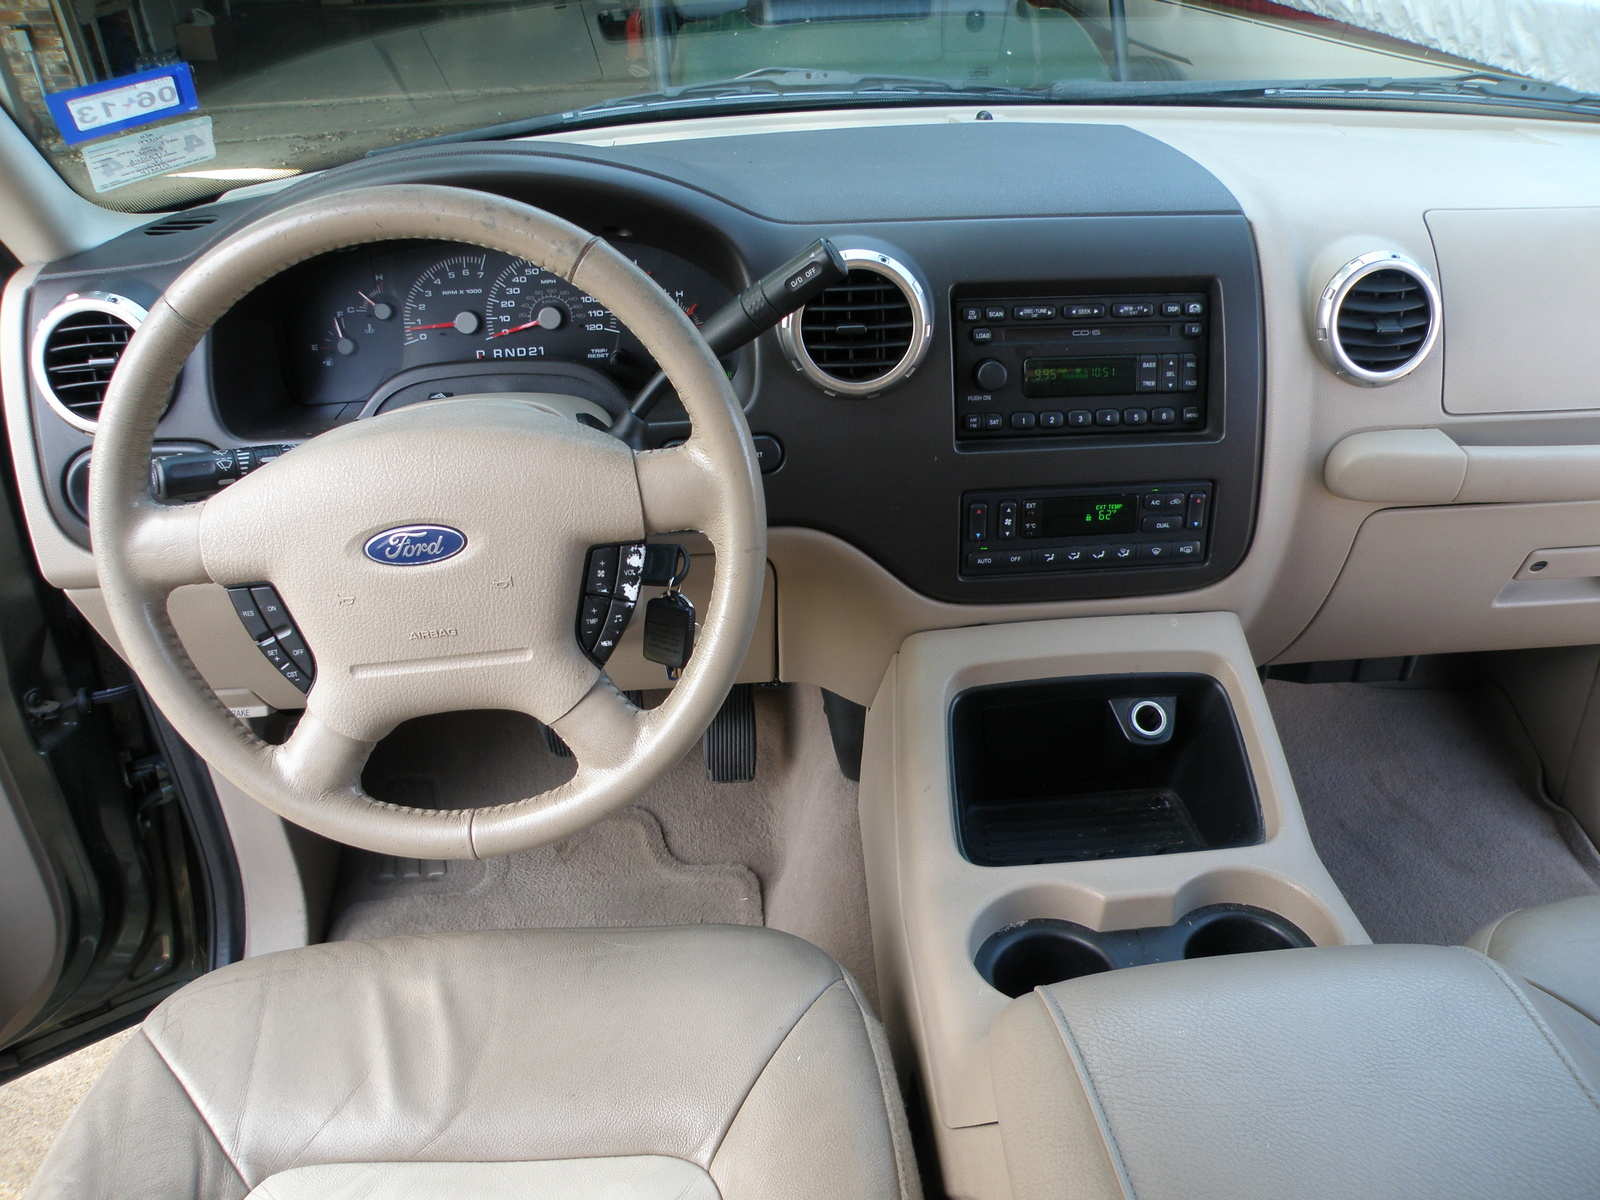 2004 ford expedition interior dimensions